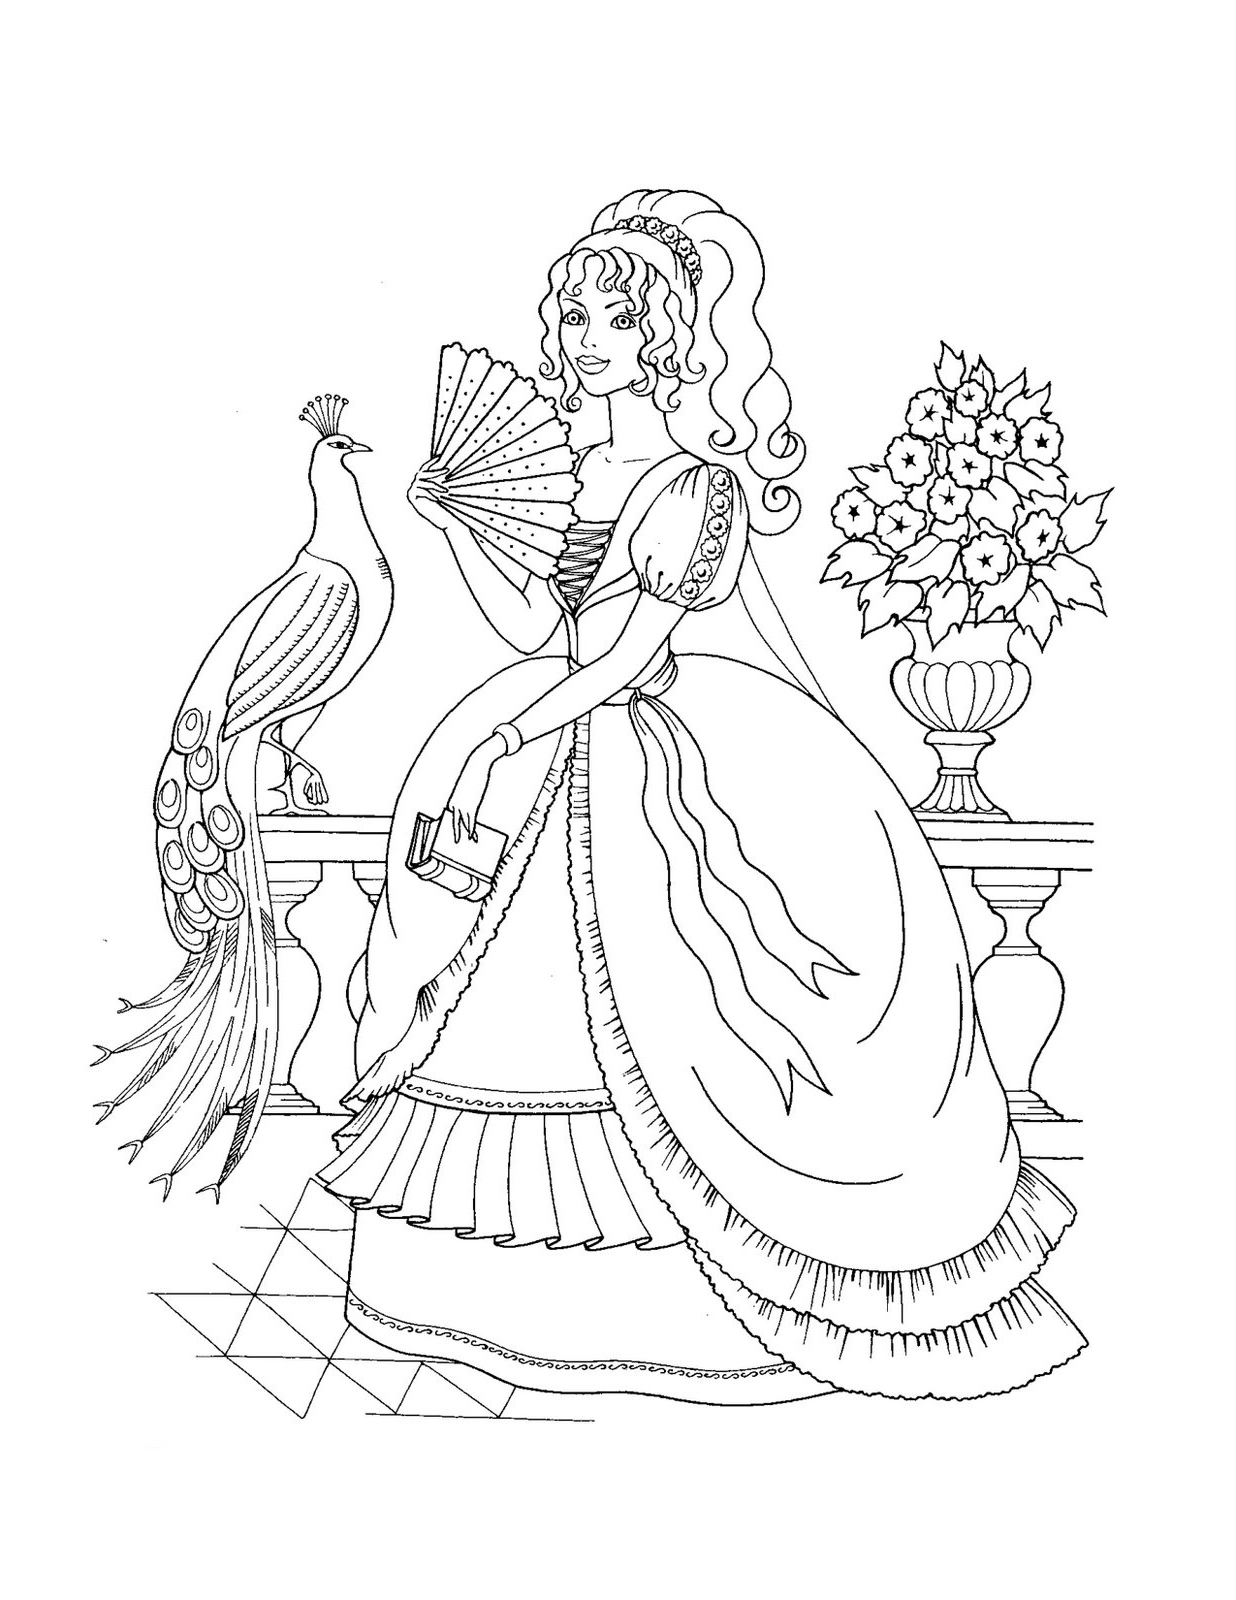 coloring pages of princesses disney princess coloring pages free printable coloring princesses pages of